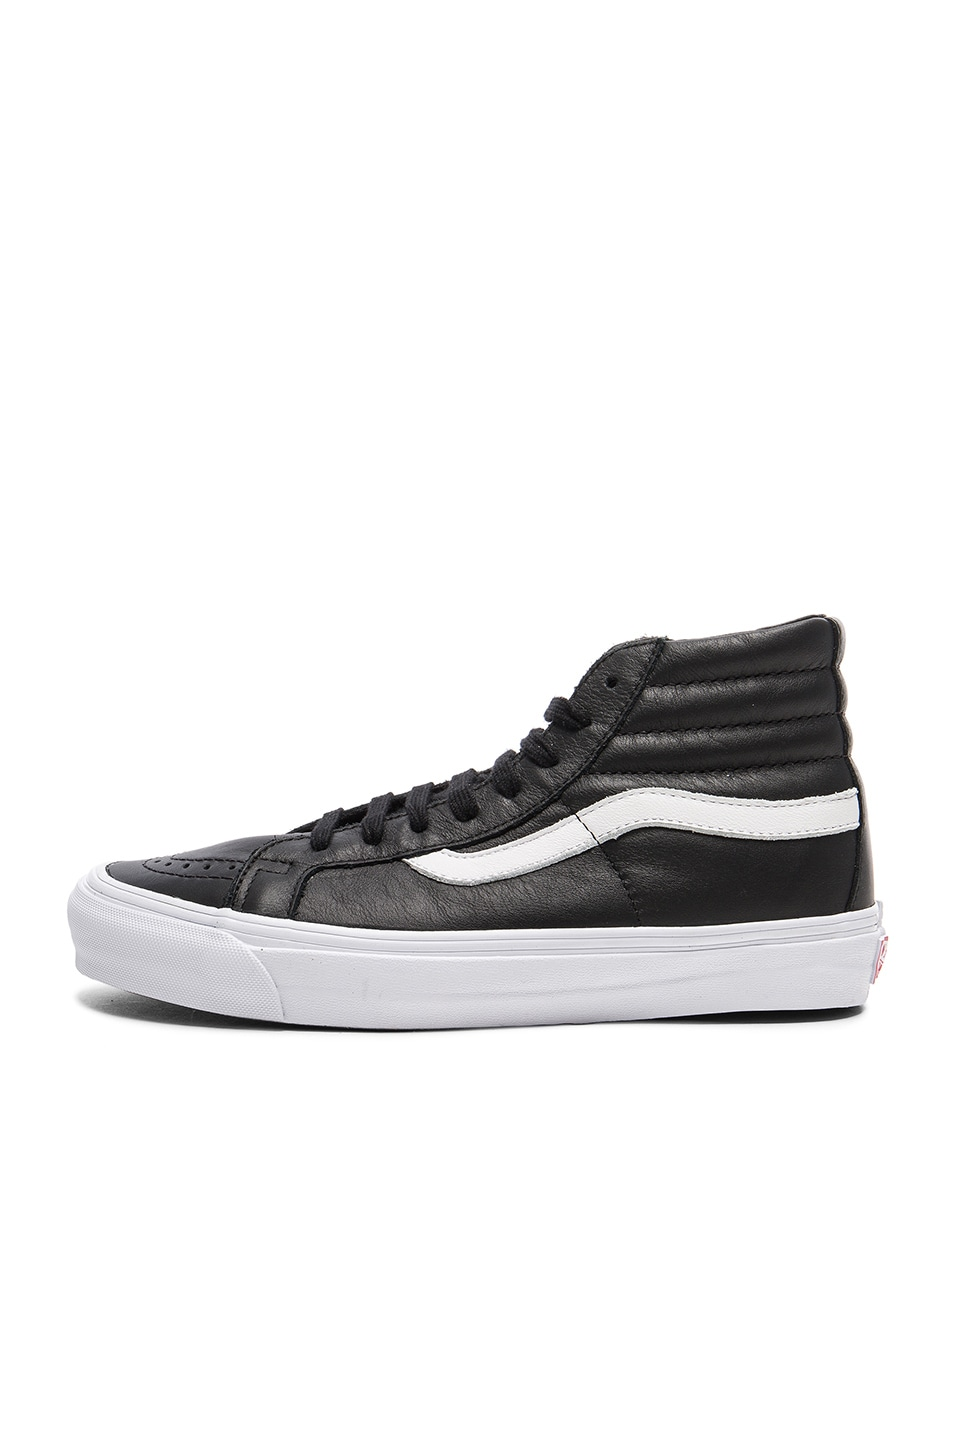 Image 5 of Vans Vault OG Leather SK8-HI LX in Black